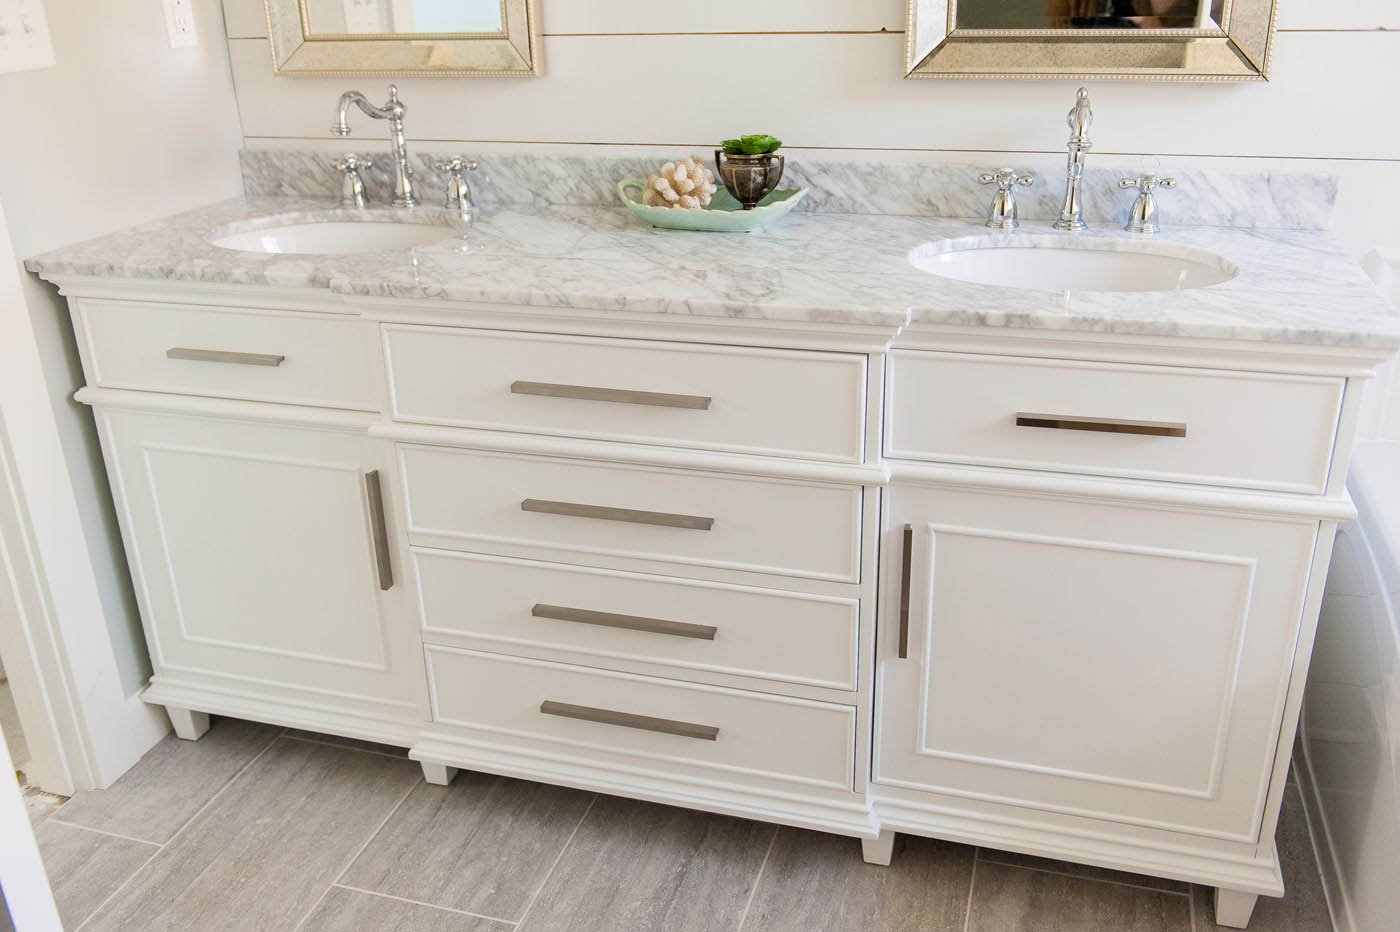 This Vanity Was Purchased On Amazon! Wha?? Bathroom Vanity Ideas | Double  Sink